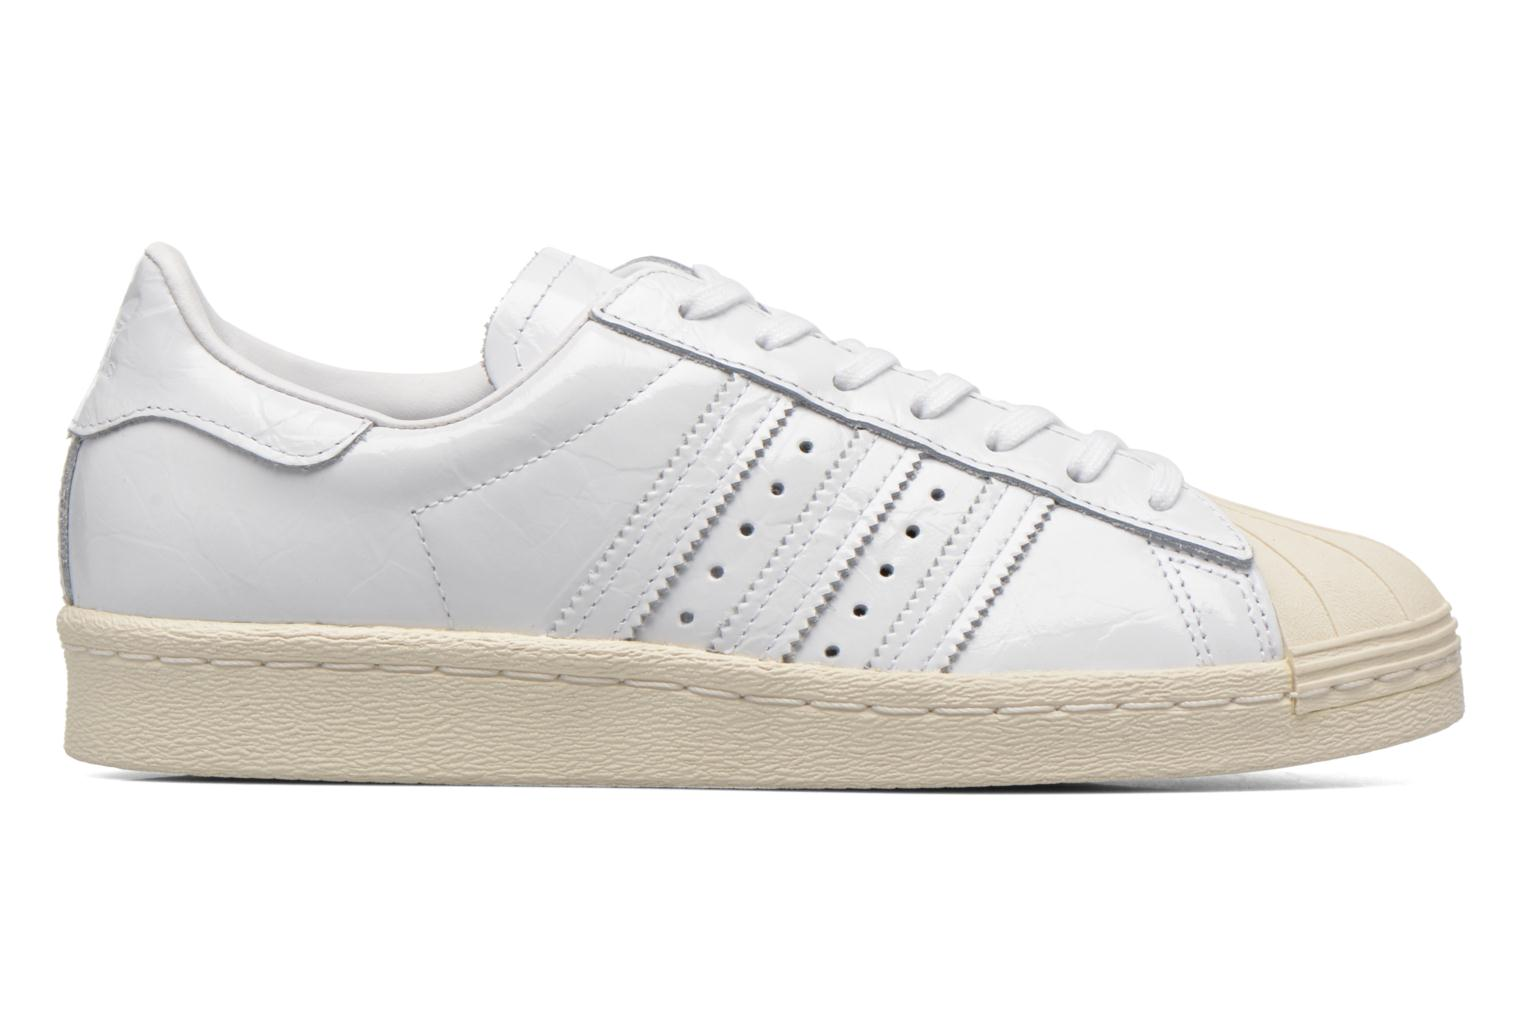 Superstar 80S W Ftwbla/Ftwbla/Blacas